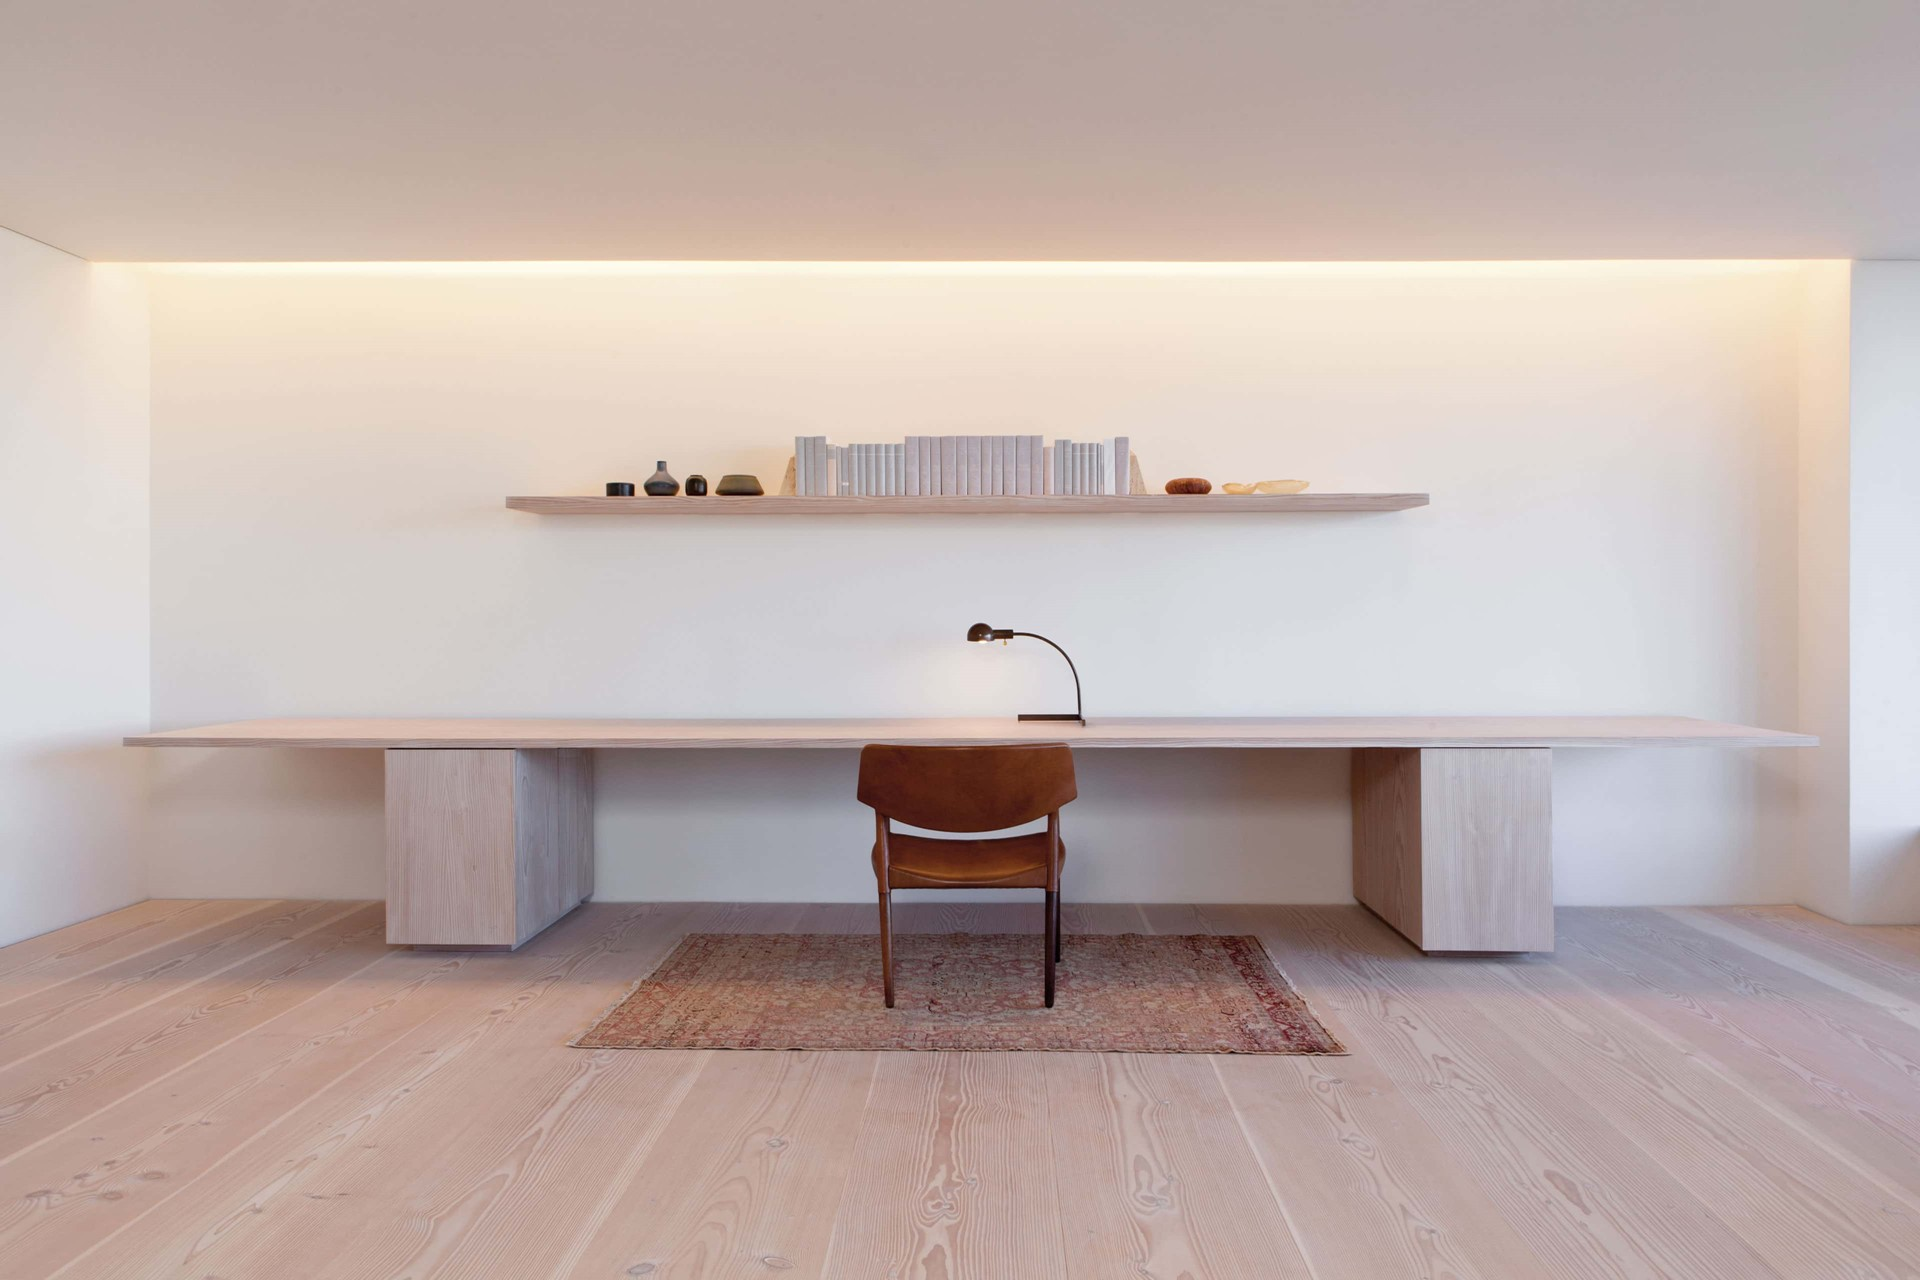 douglas-flooring_lye-and-white-soap_central-park-office_wooden-work-space_dinesen.jpg